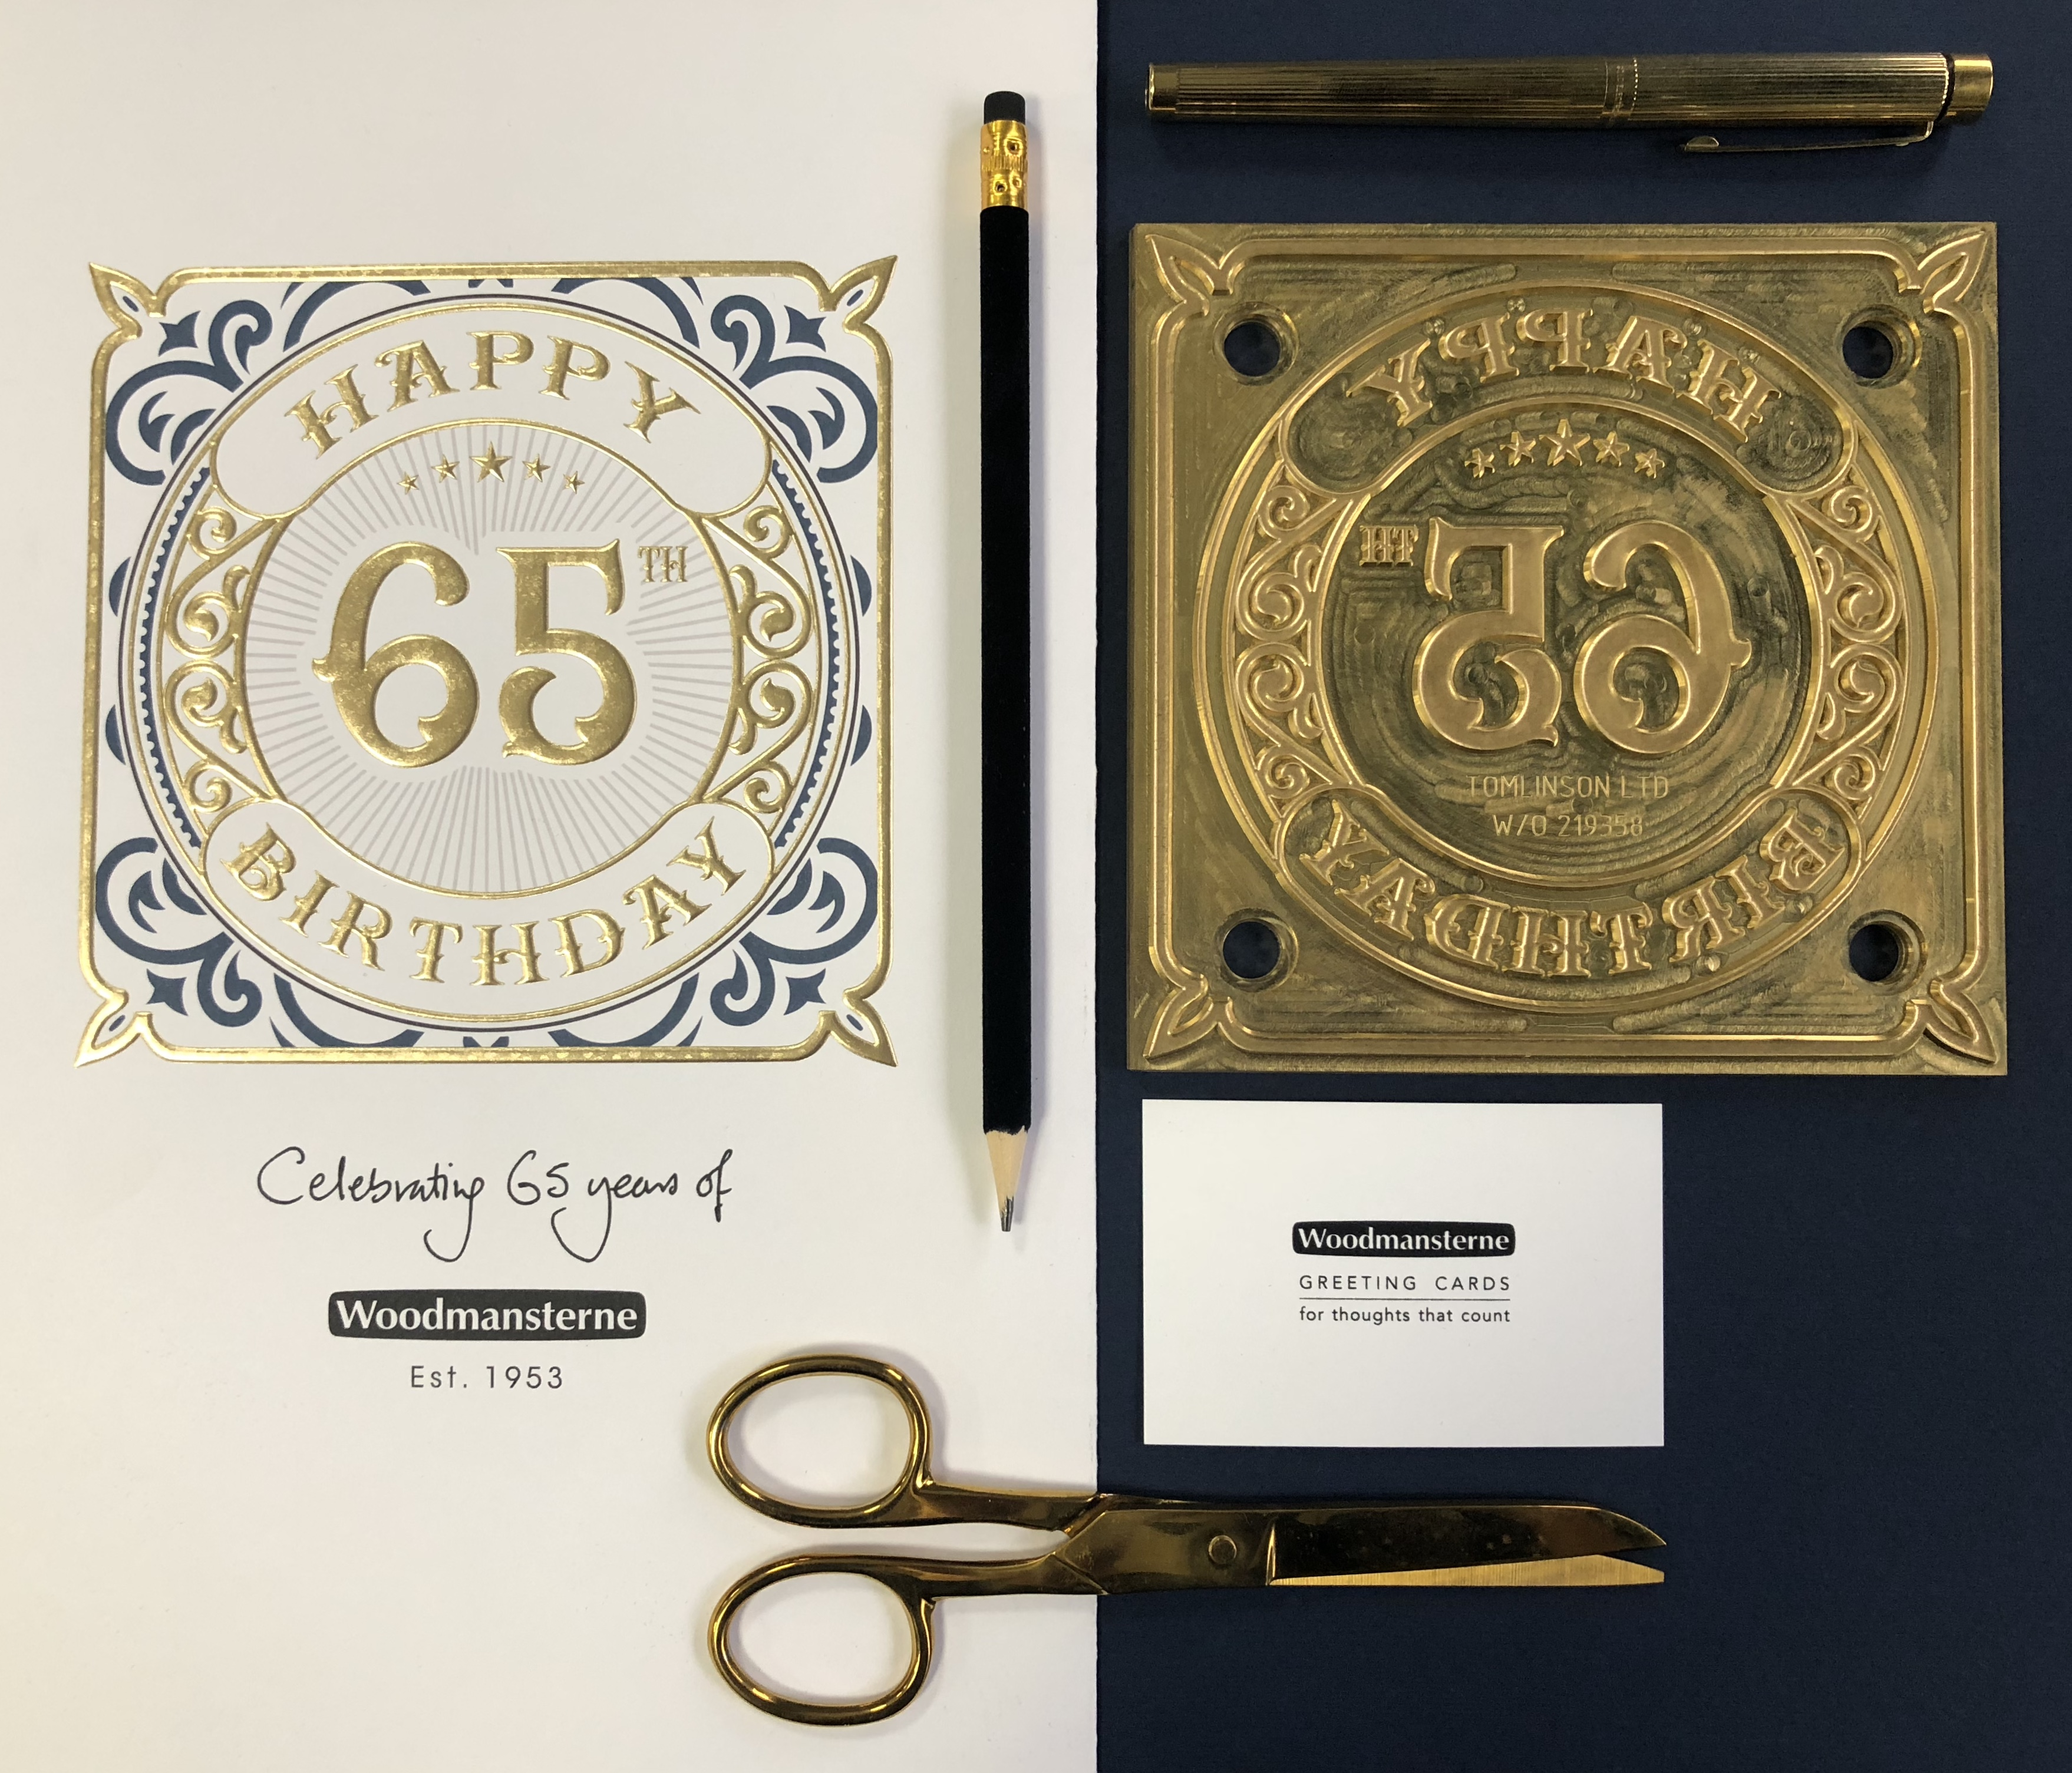 Above: This year Woodmansterne is celebrating the 65thanniversary of the company.